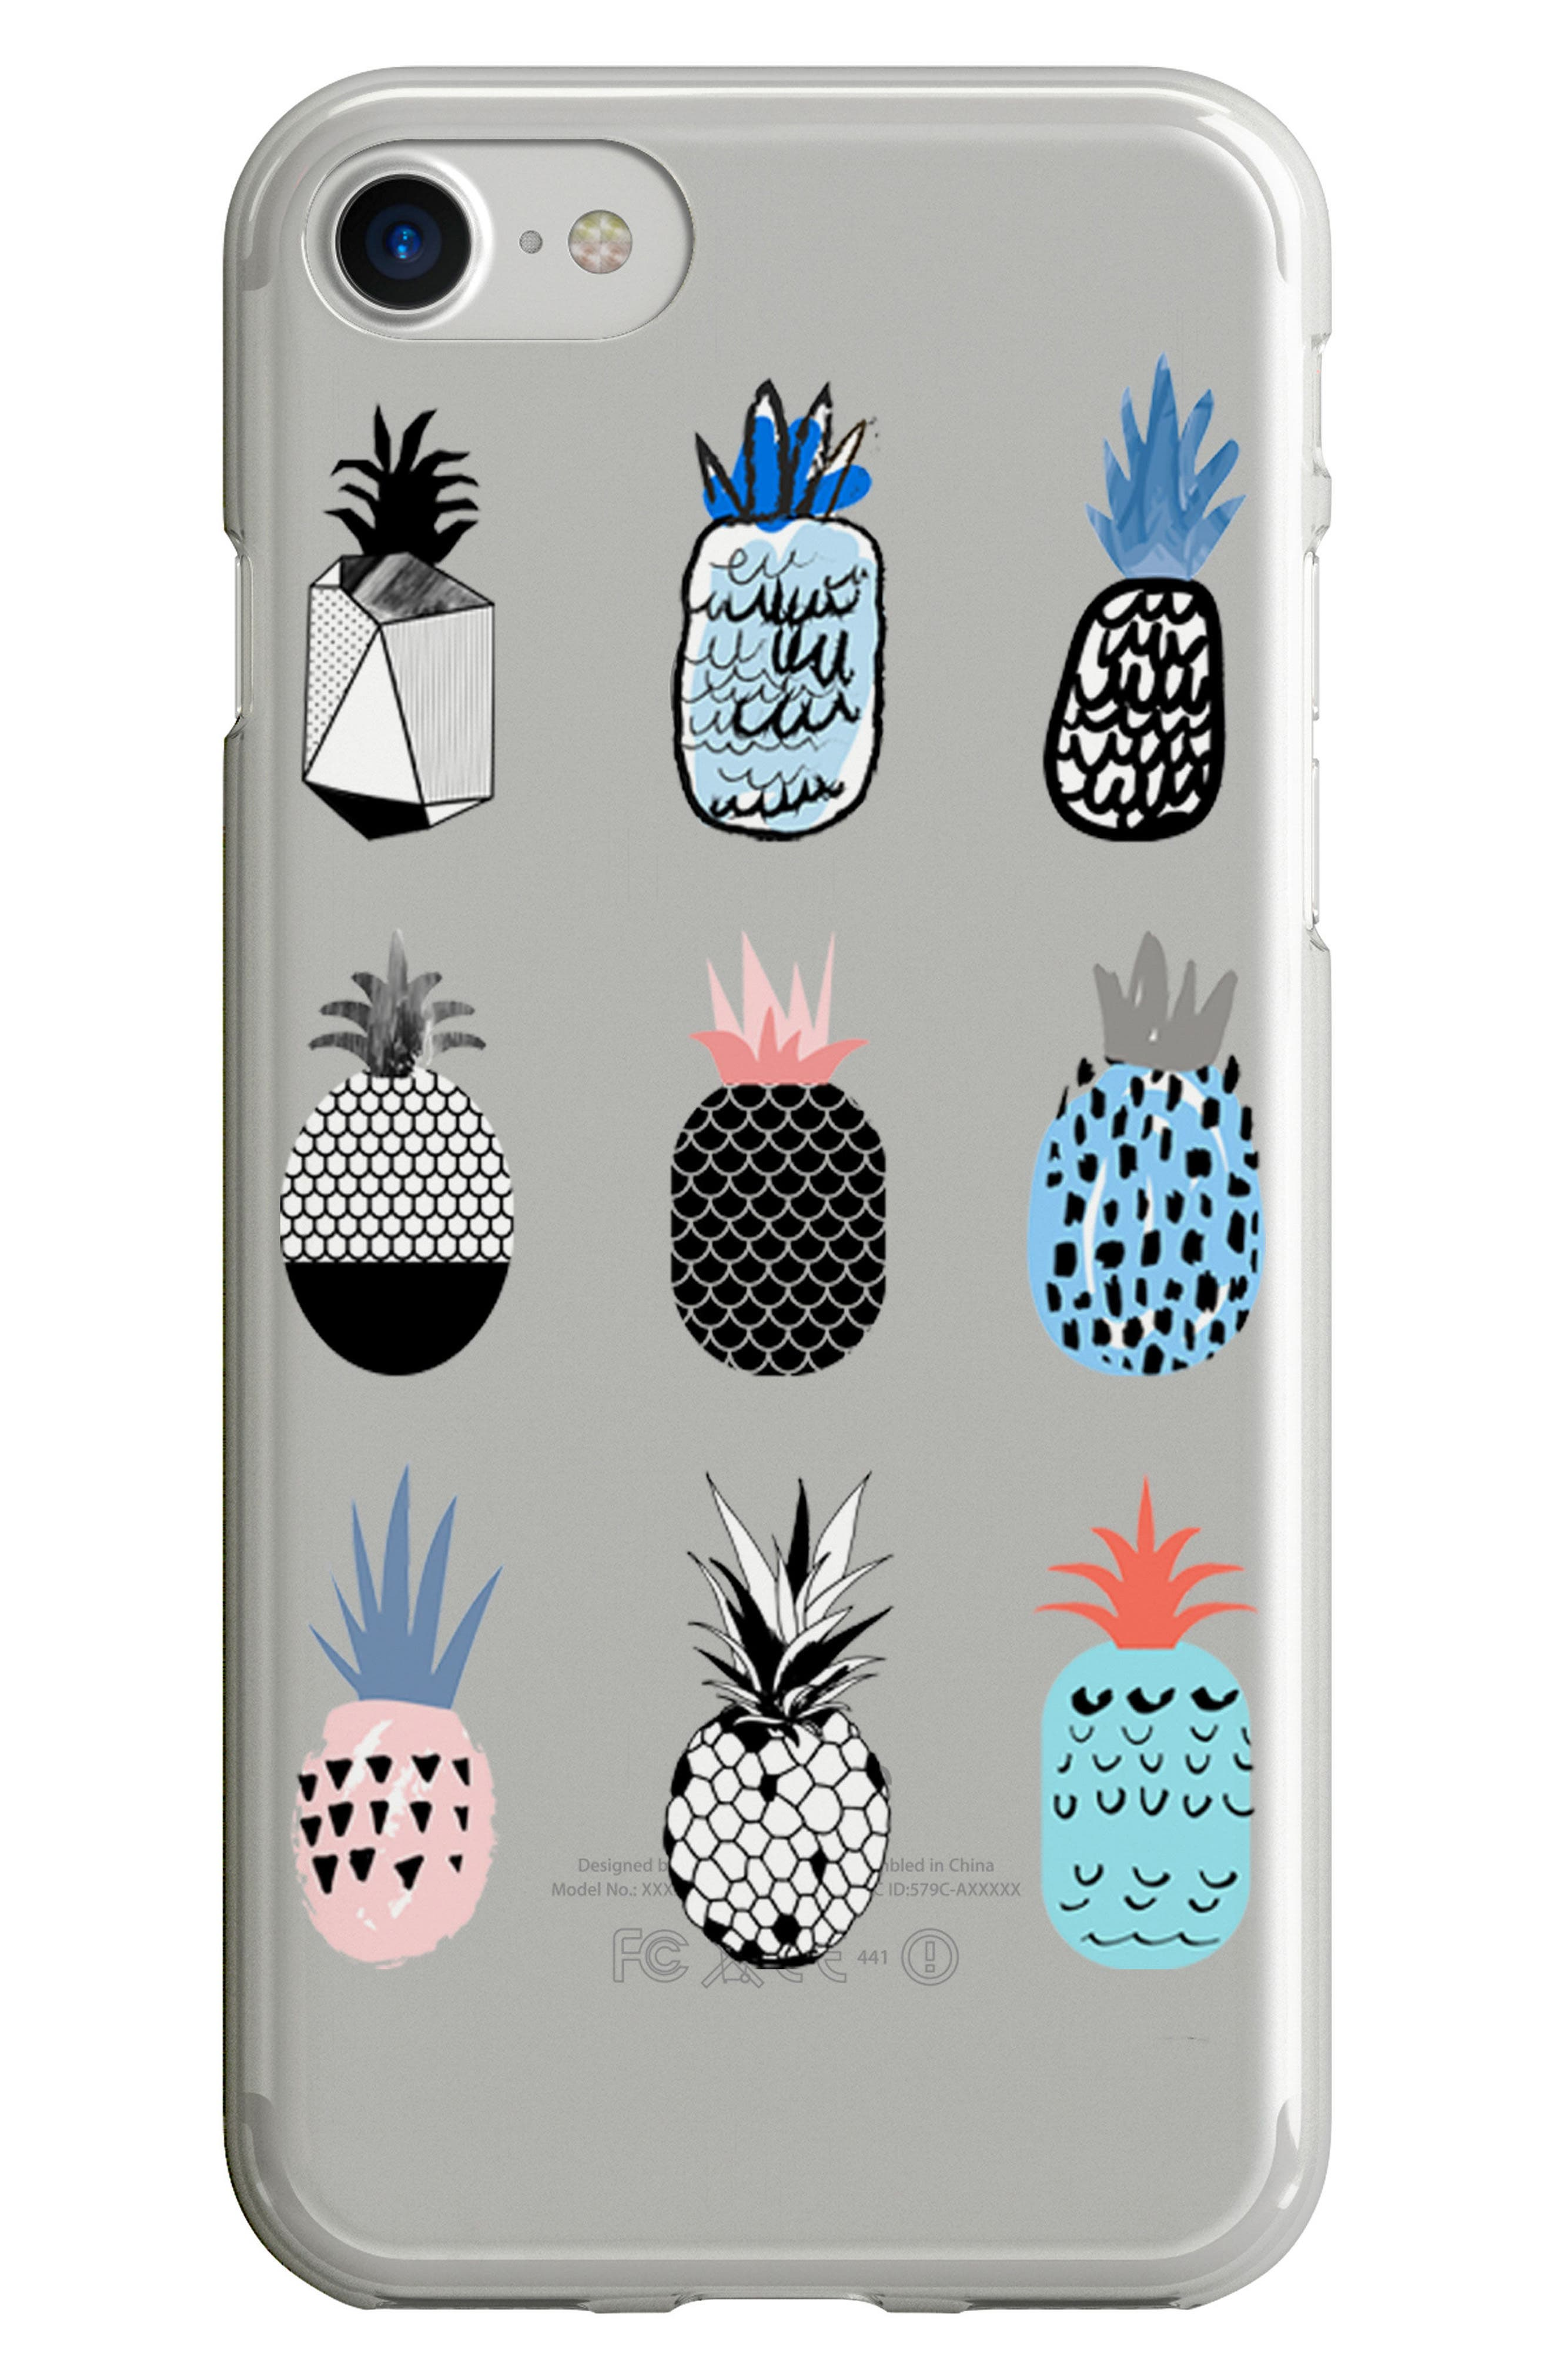 Recover Pineapple iPhone 6/6s/7/8 Case